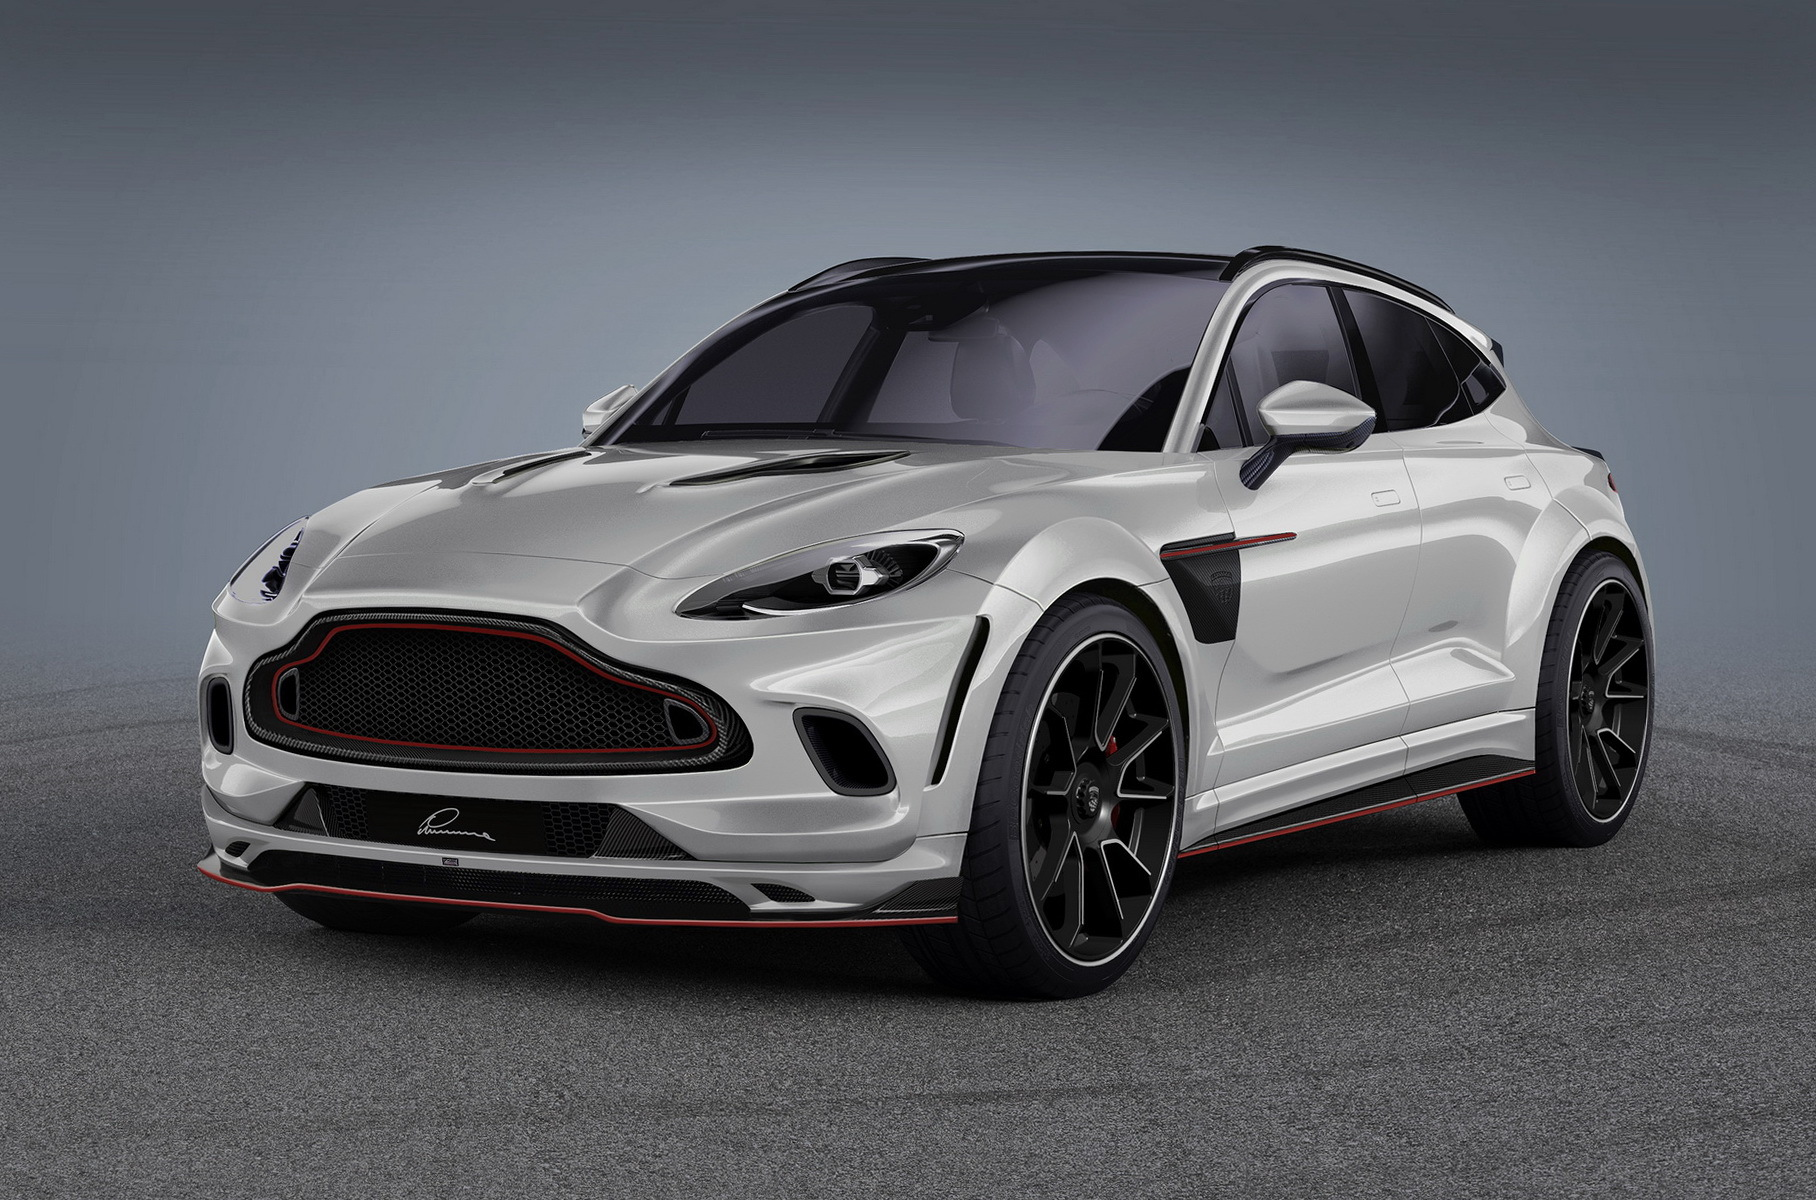 Lumma Design has released the first 3D renderings of its upcoming CLR AM Series body kit for the Aston Martin DBX. Twenty such kits will ship starting late this year.